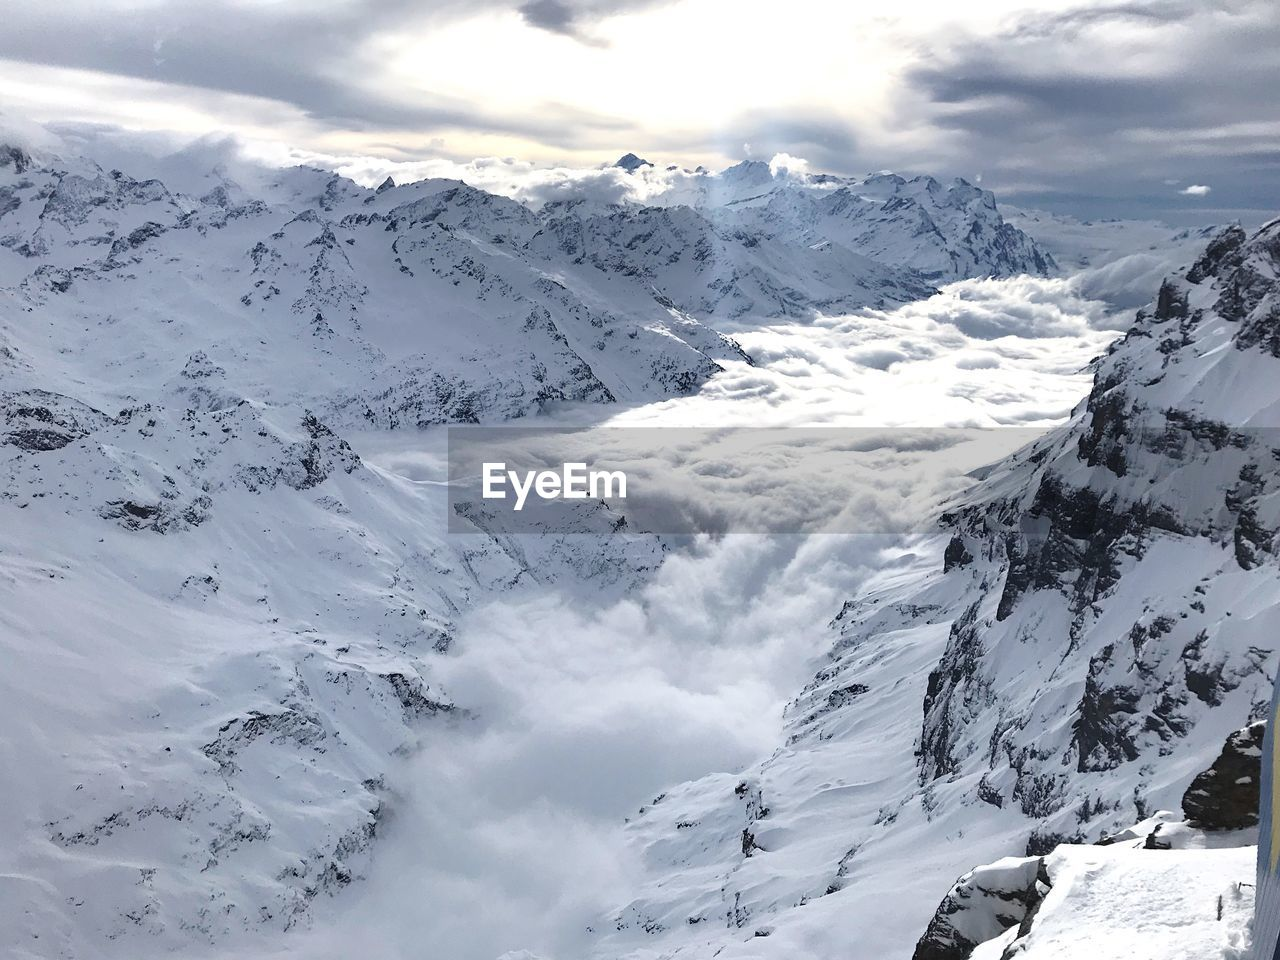 winter, cold temperature, snow, beauty in nature, scenics - nature, mountain, snowcapped mountain, cloud - sky, tranquil scene, sky, tranquility, white color, mountain range, environment, landscape, day, non-urban scene, nature, no people, mountain peak, formation